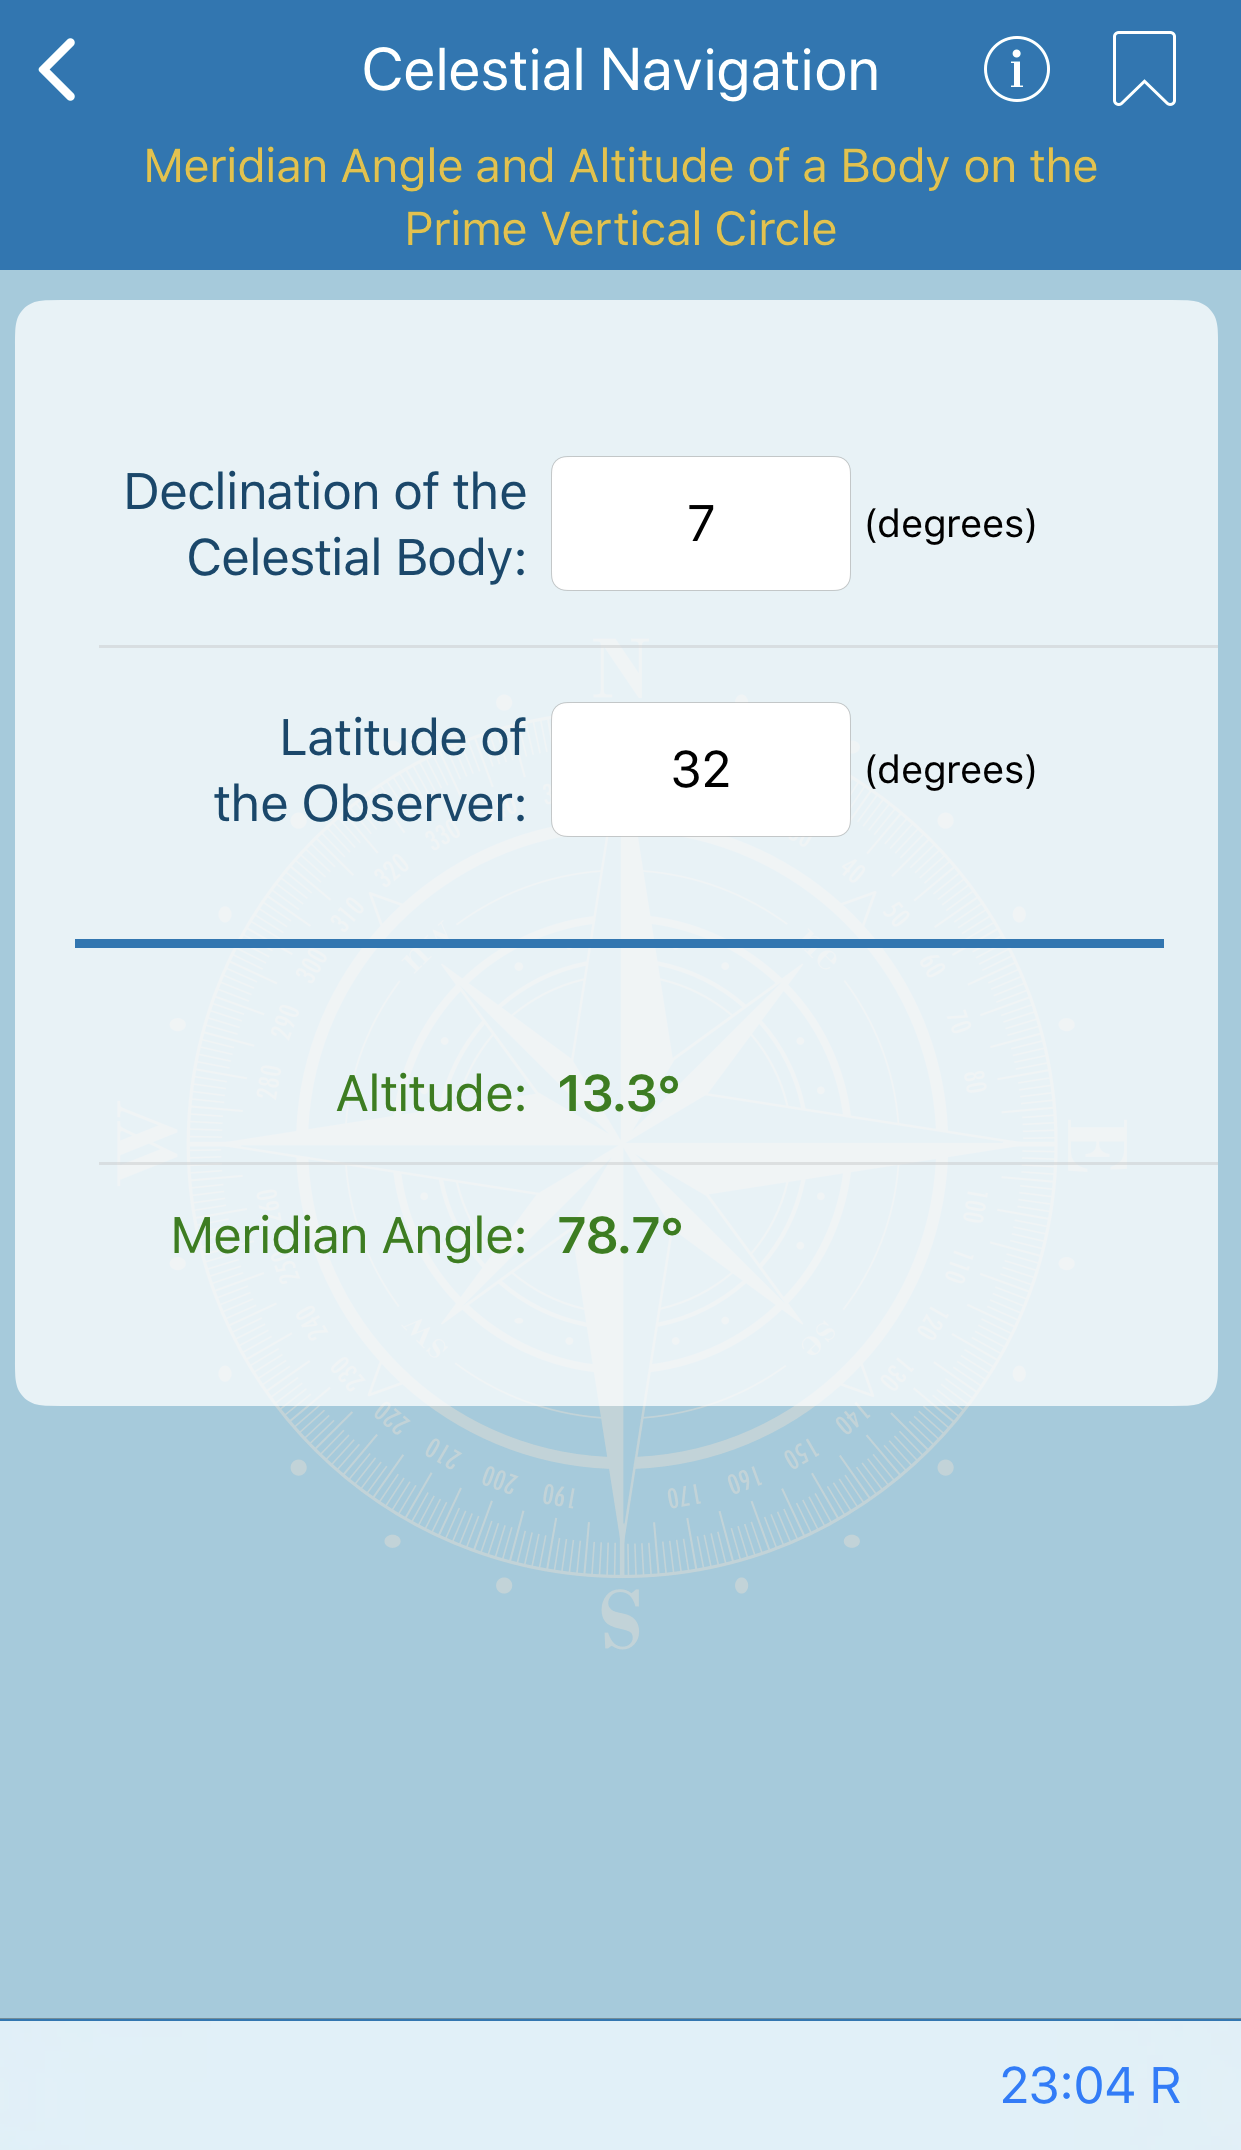 Meridian Angle and Altitude of a Body on the Prime Vertical Circle